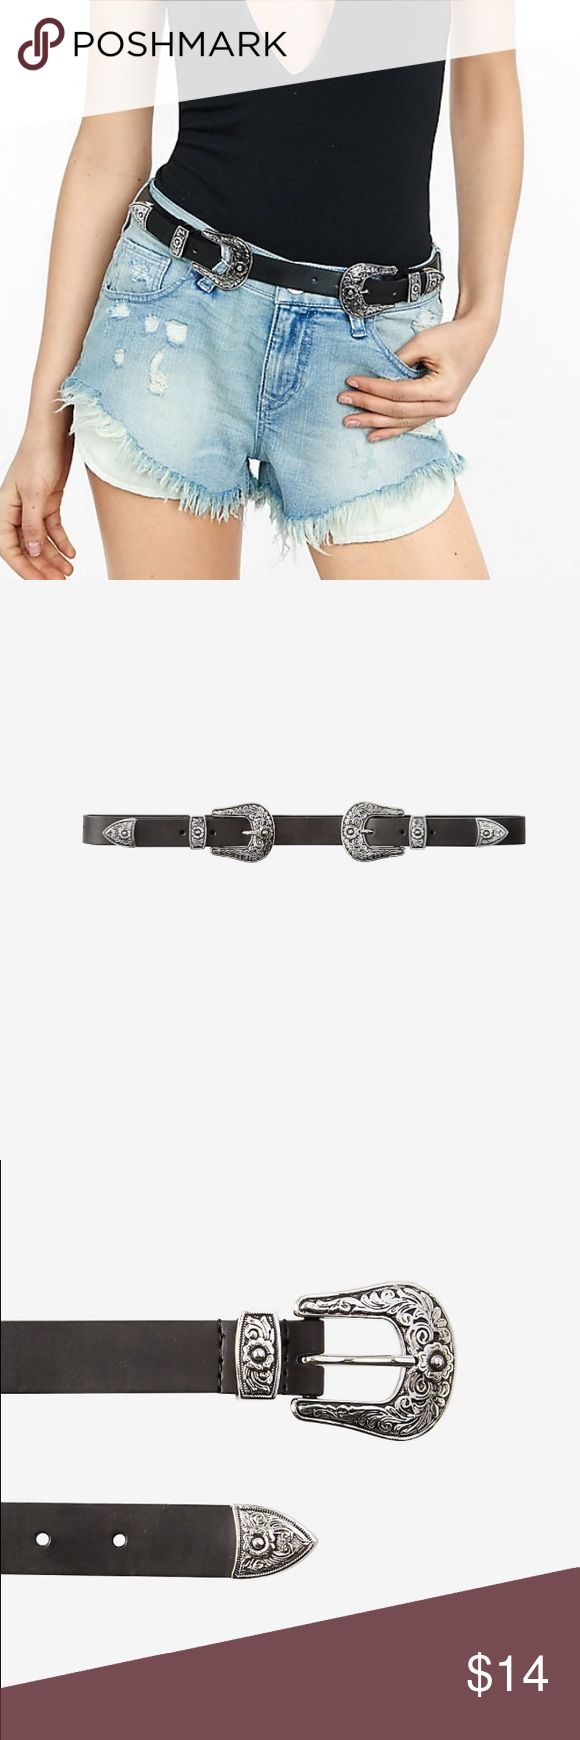 """Express Double Buckle Western Belt - Large Cinch a southwestern look with this western-style double buckle belt. The unique two-piece design comes with an adjustable center section that has two metal tips that slide into opposing buckles and keepers. Great with mid rise or high waisted denim. 1"""" inch wide. Metal/synthetic. Size large. Worn once. Good condition. Smoker free household. Express Accessories Belts"""